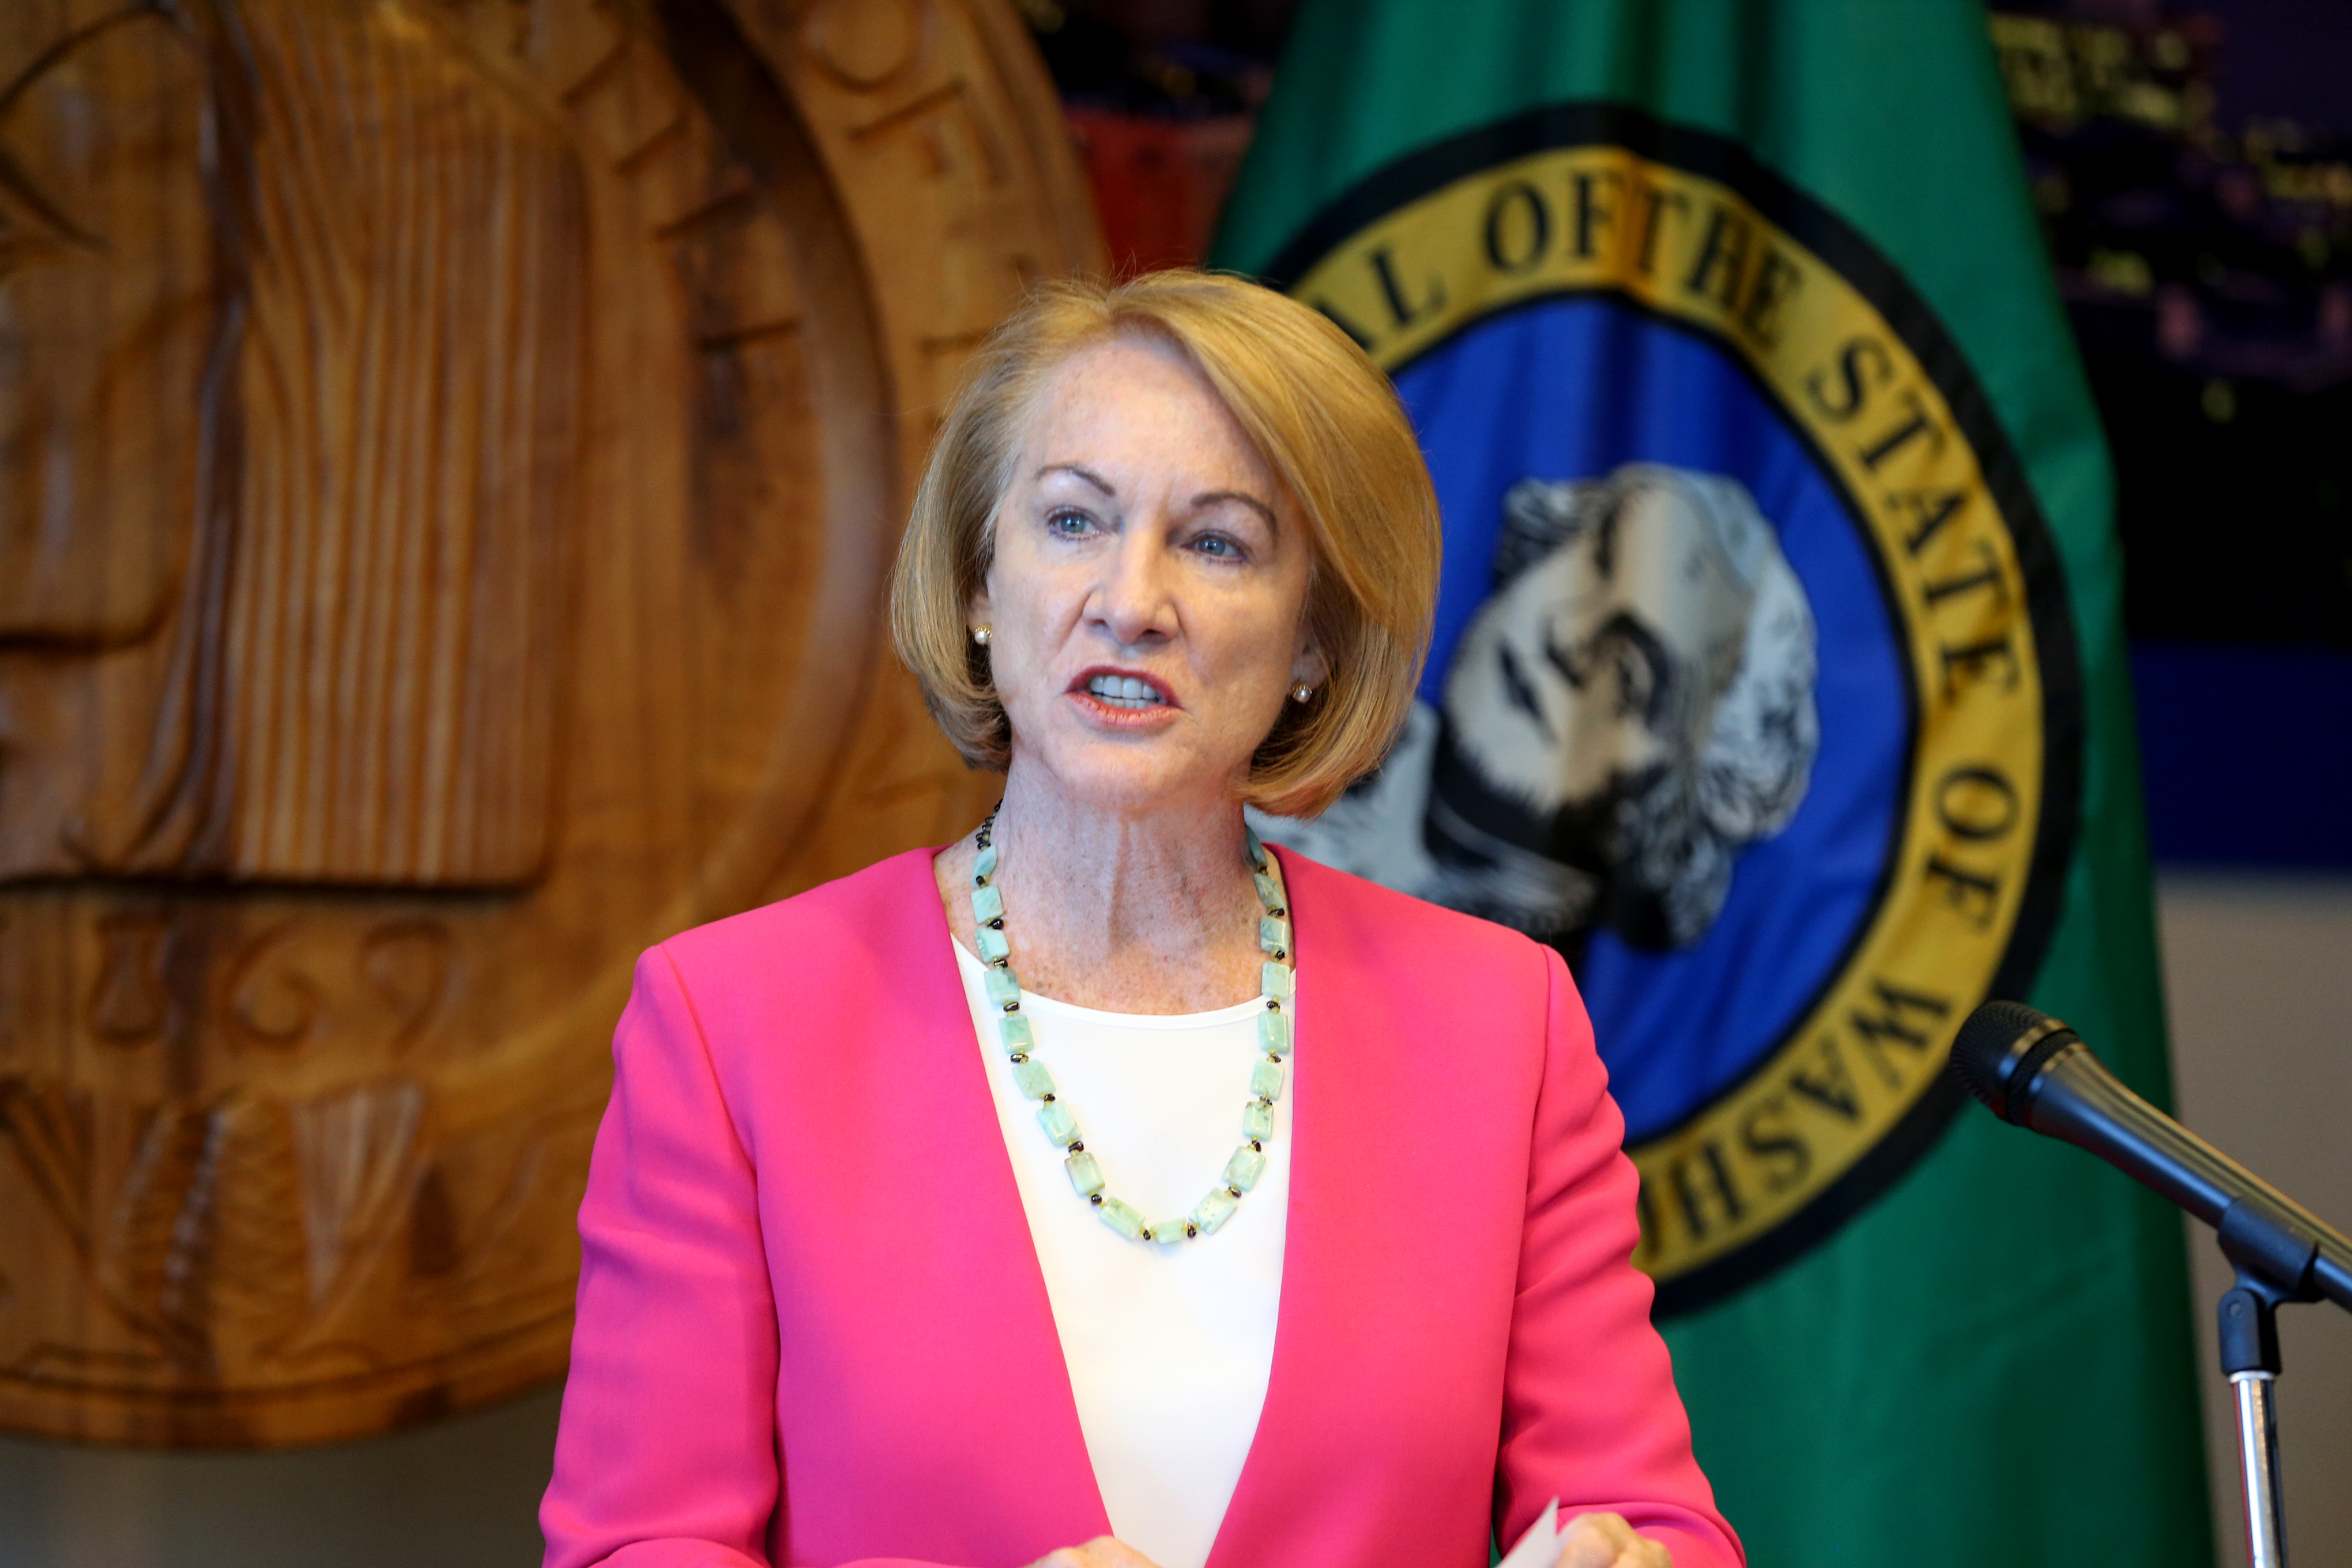 Seattle Mayor Jenny Durkan at Seattle City Hall in Seattle, Washington. (Photo by Karen Ducey/Getty Images)